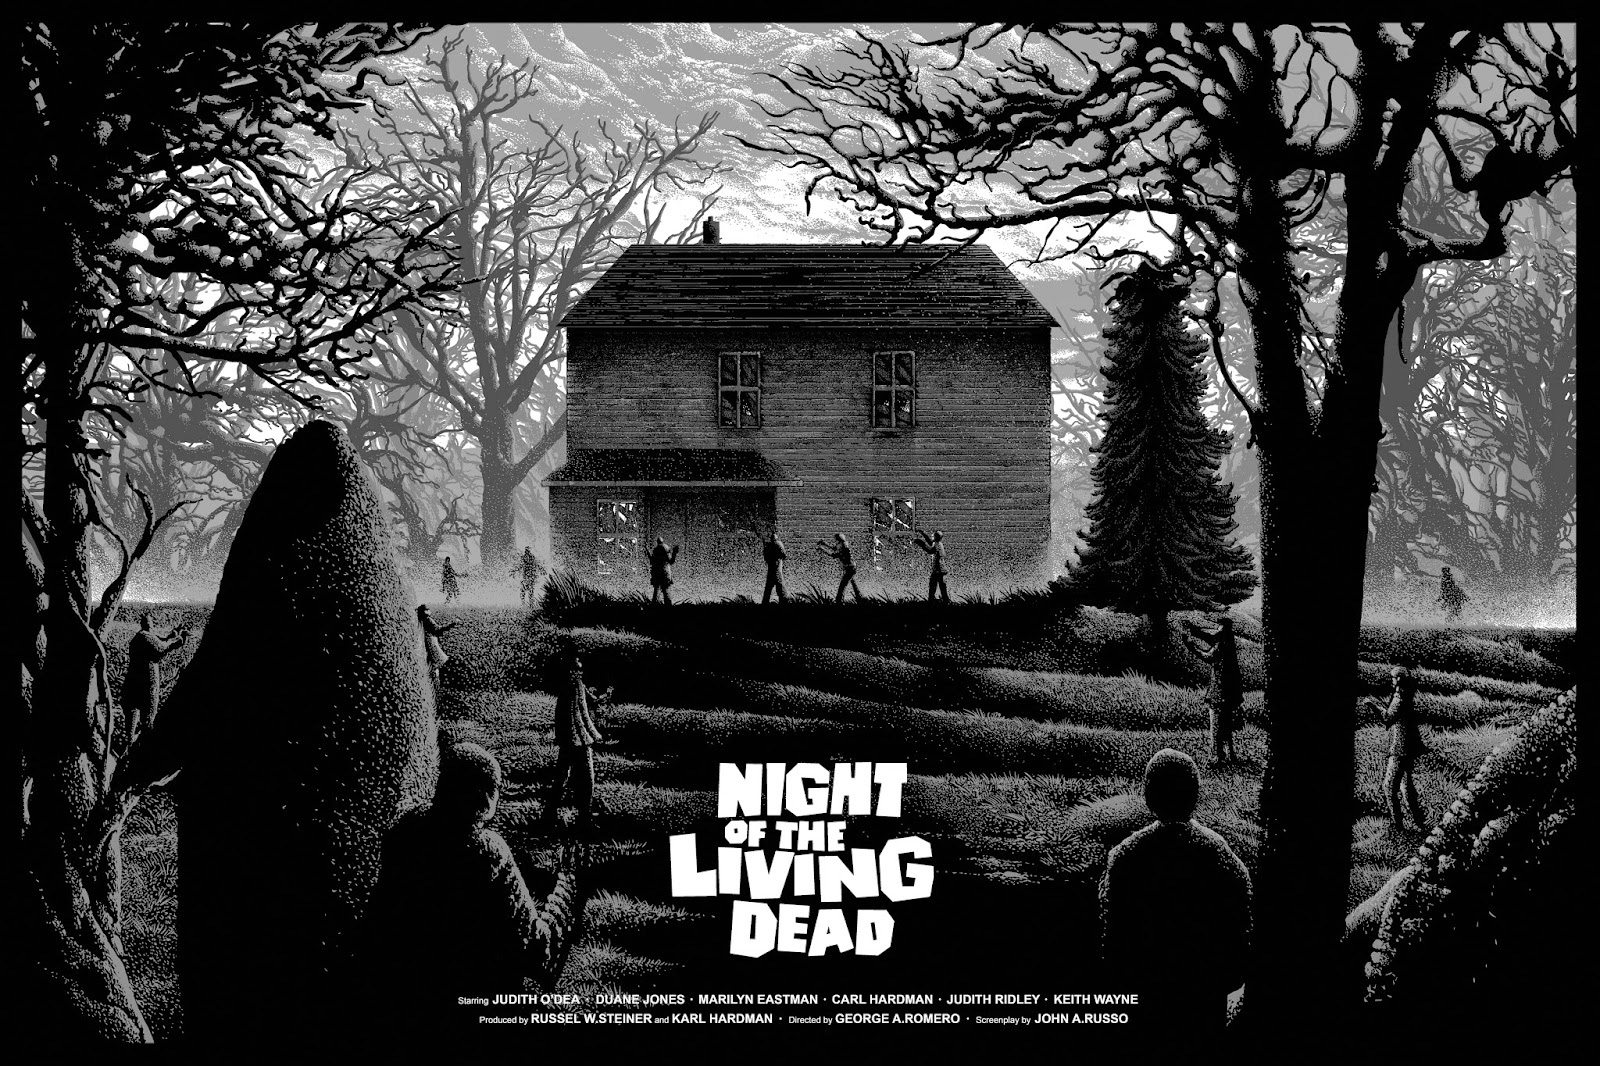 Night Of The Living Dead Farmhouse Night Of The Living Dead Movie Poster Print Missed Prints